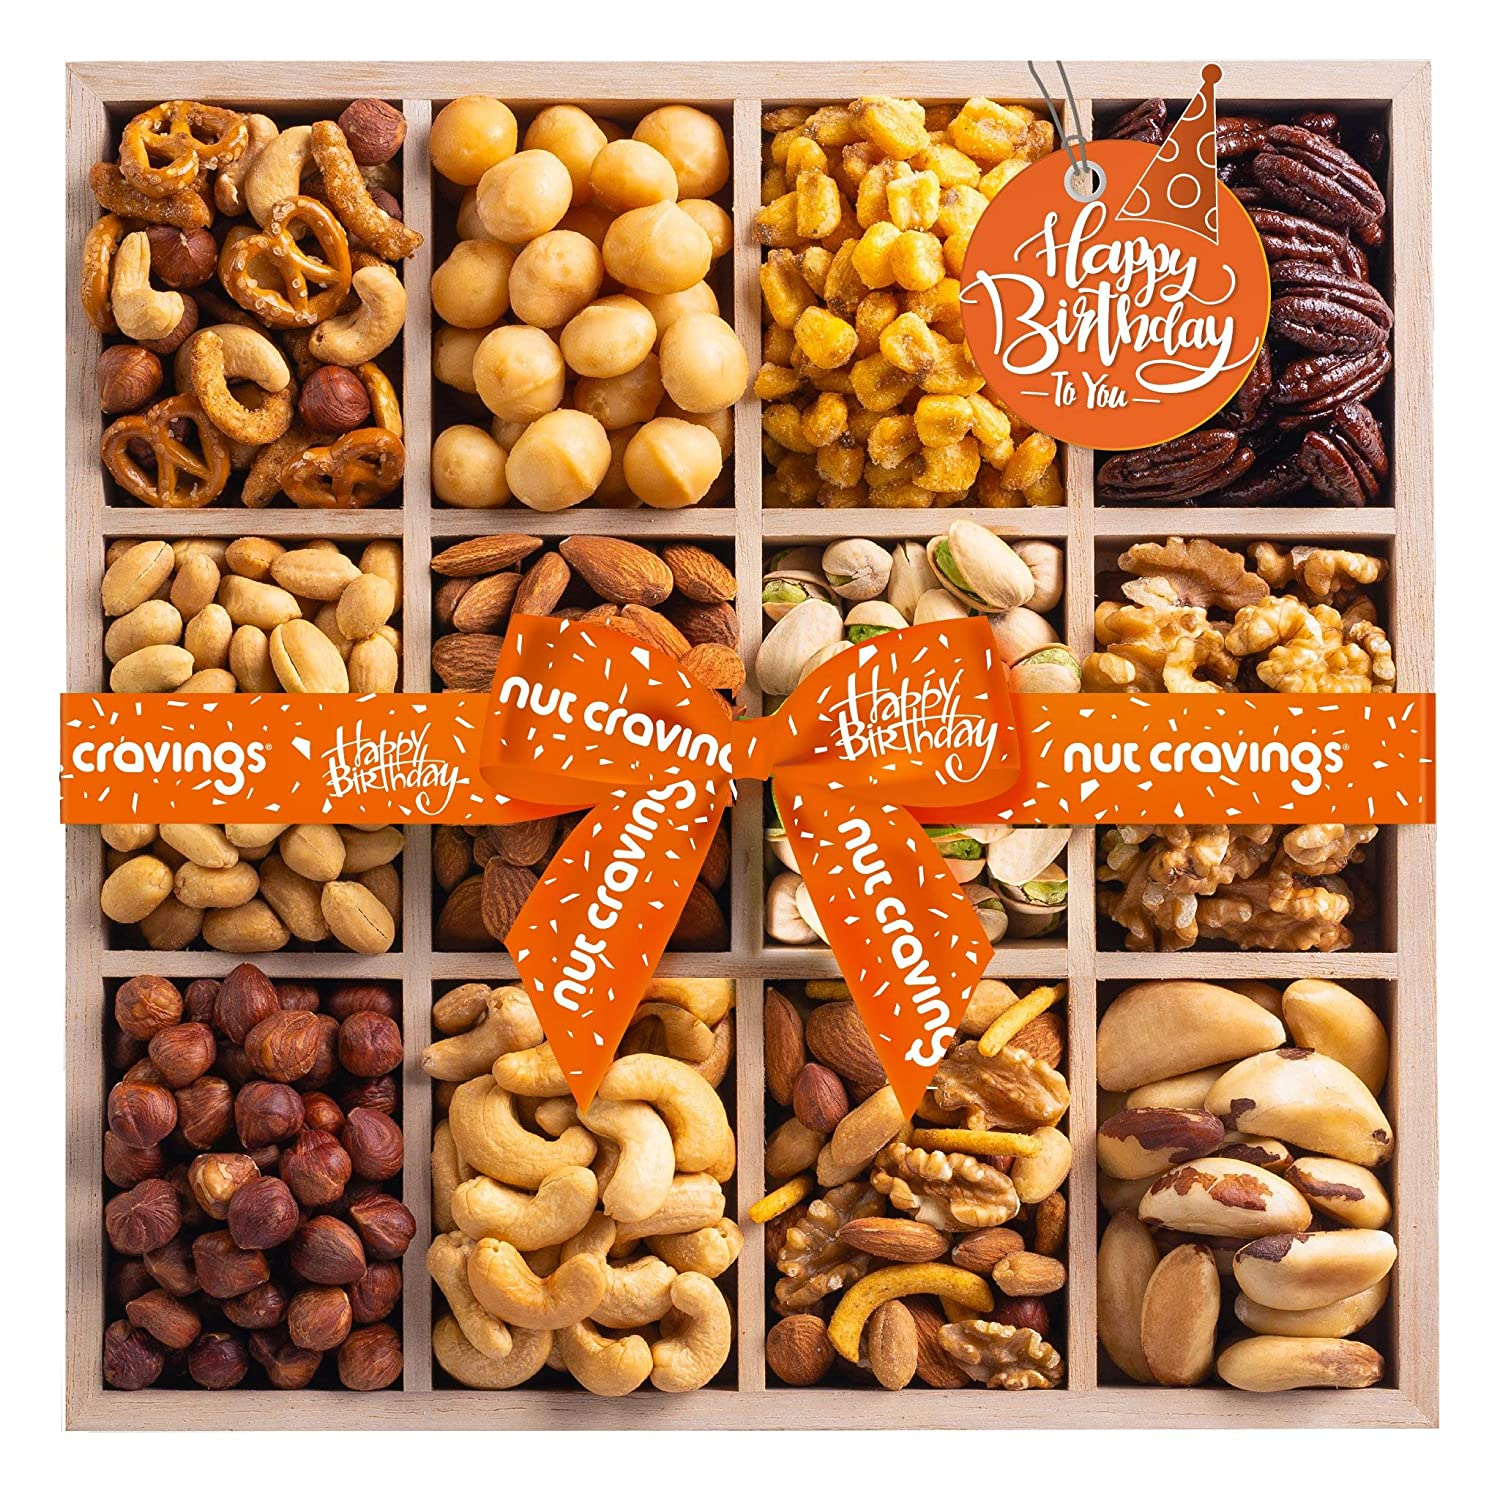 Happy Birthday Gift Basket, Wooden Nut Tray Platter + Orange Ribbon (12 Piece Assortment) Arrangement Platter, Care Package Variety, Healthy Food Tray, Kosher Snack Box for Mom, Women, Men, Adults